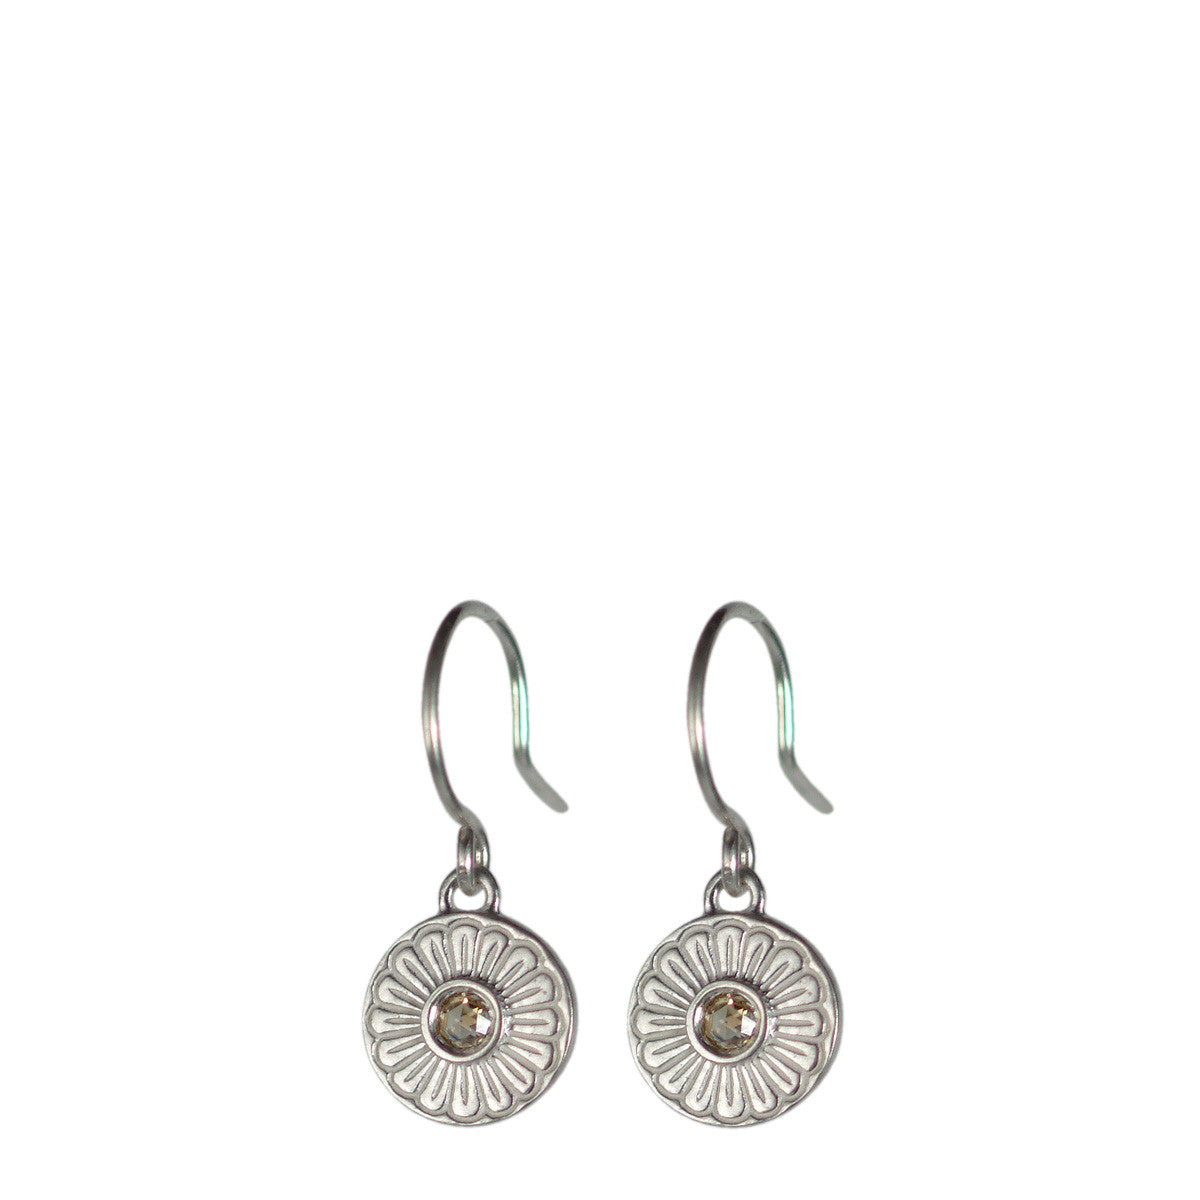 Sterling Silver Flower Drop Earrings with Brown Diamonds